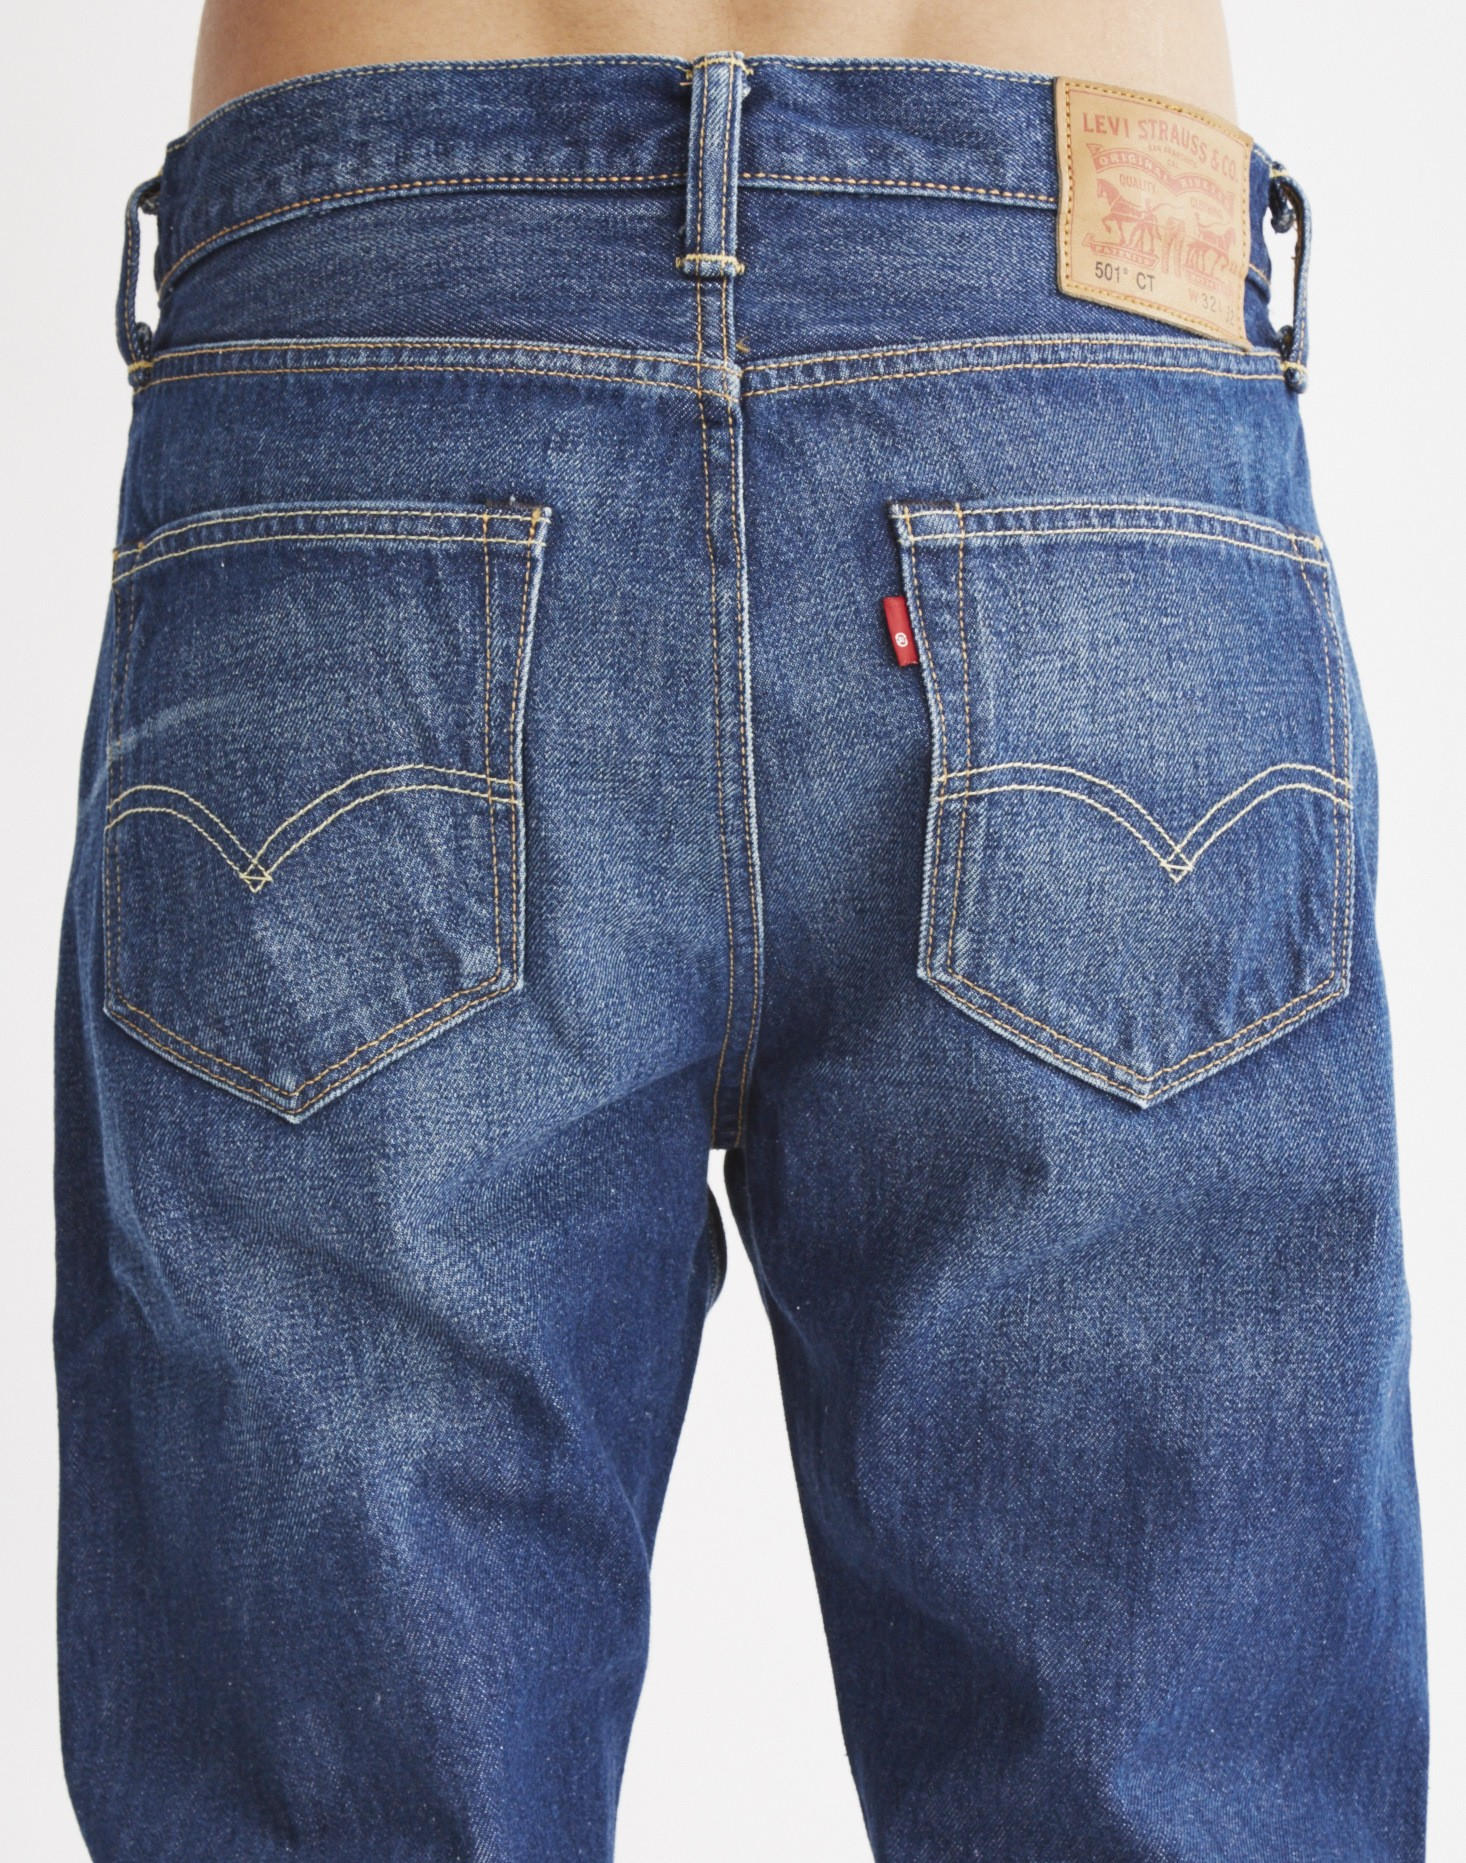 730370f0 Lyst - Levi's 501 Customized And Tapered Dalston Jean in Blue for Men